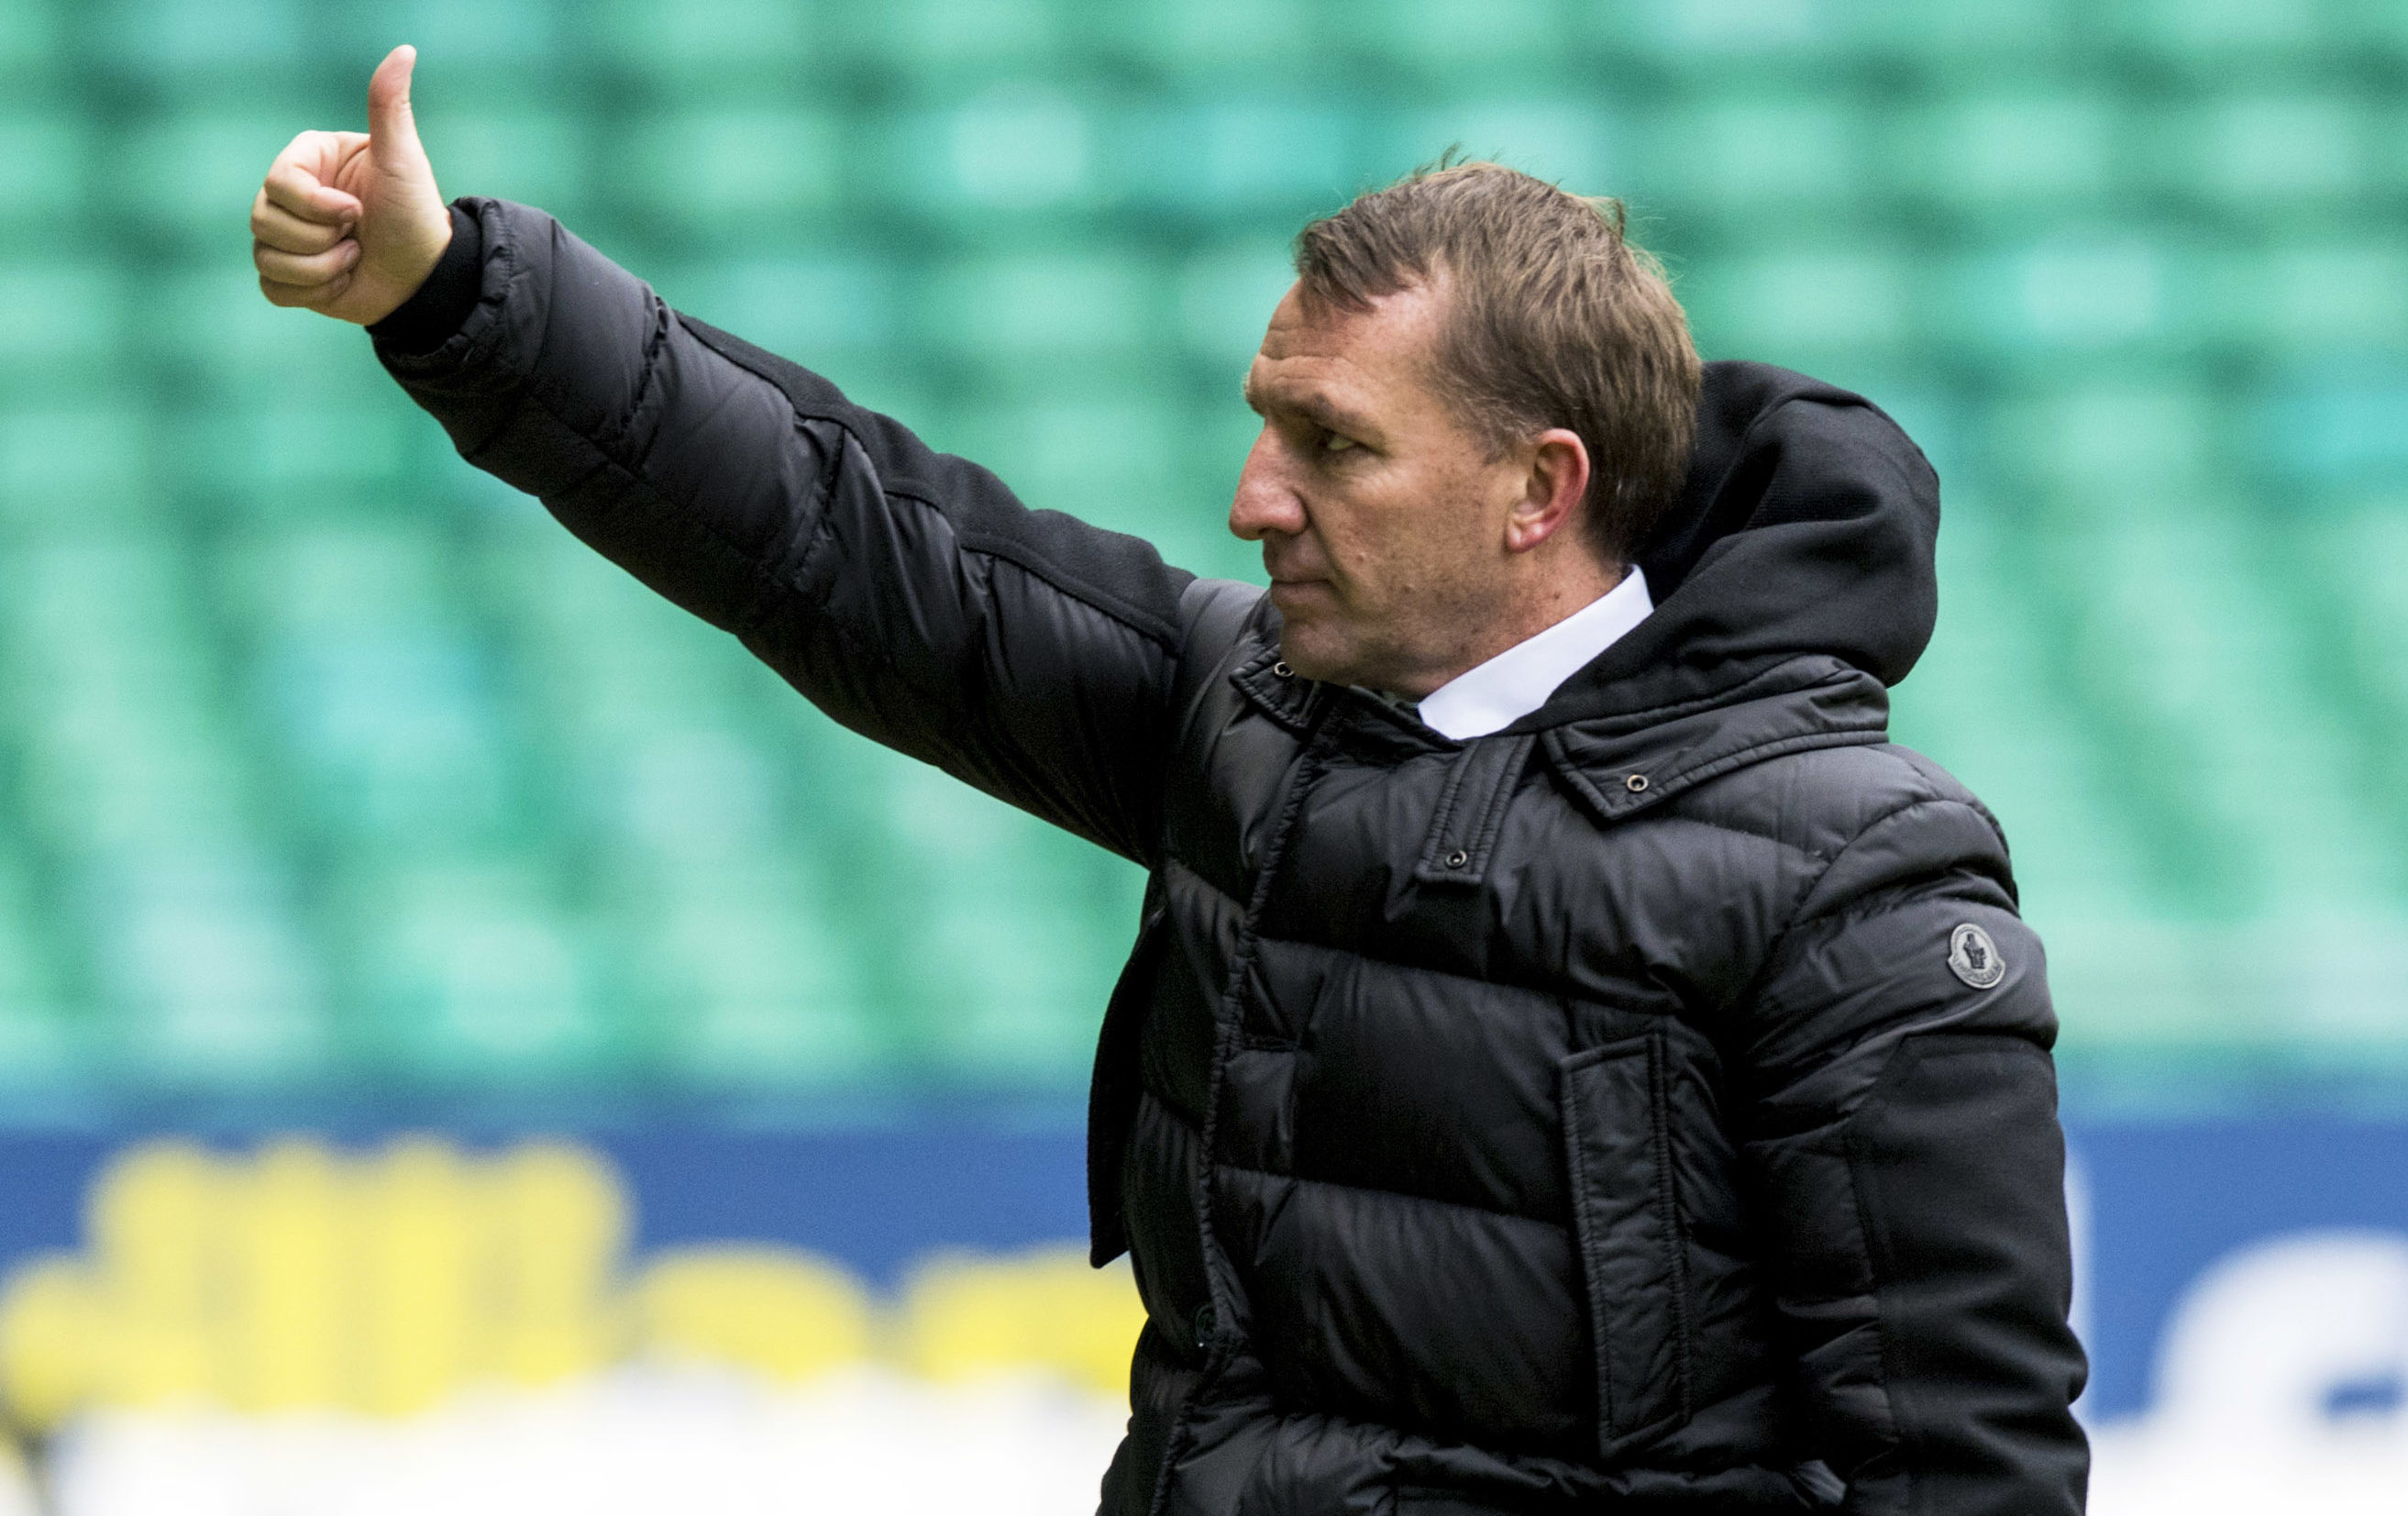 Celtic manager Brendan Rodgers celebrates at full-time. (SNS)